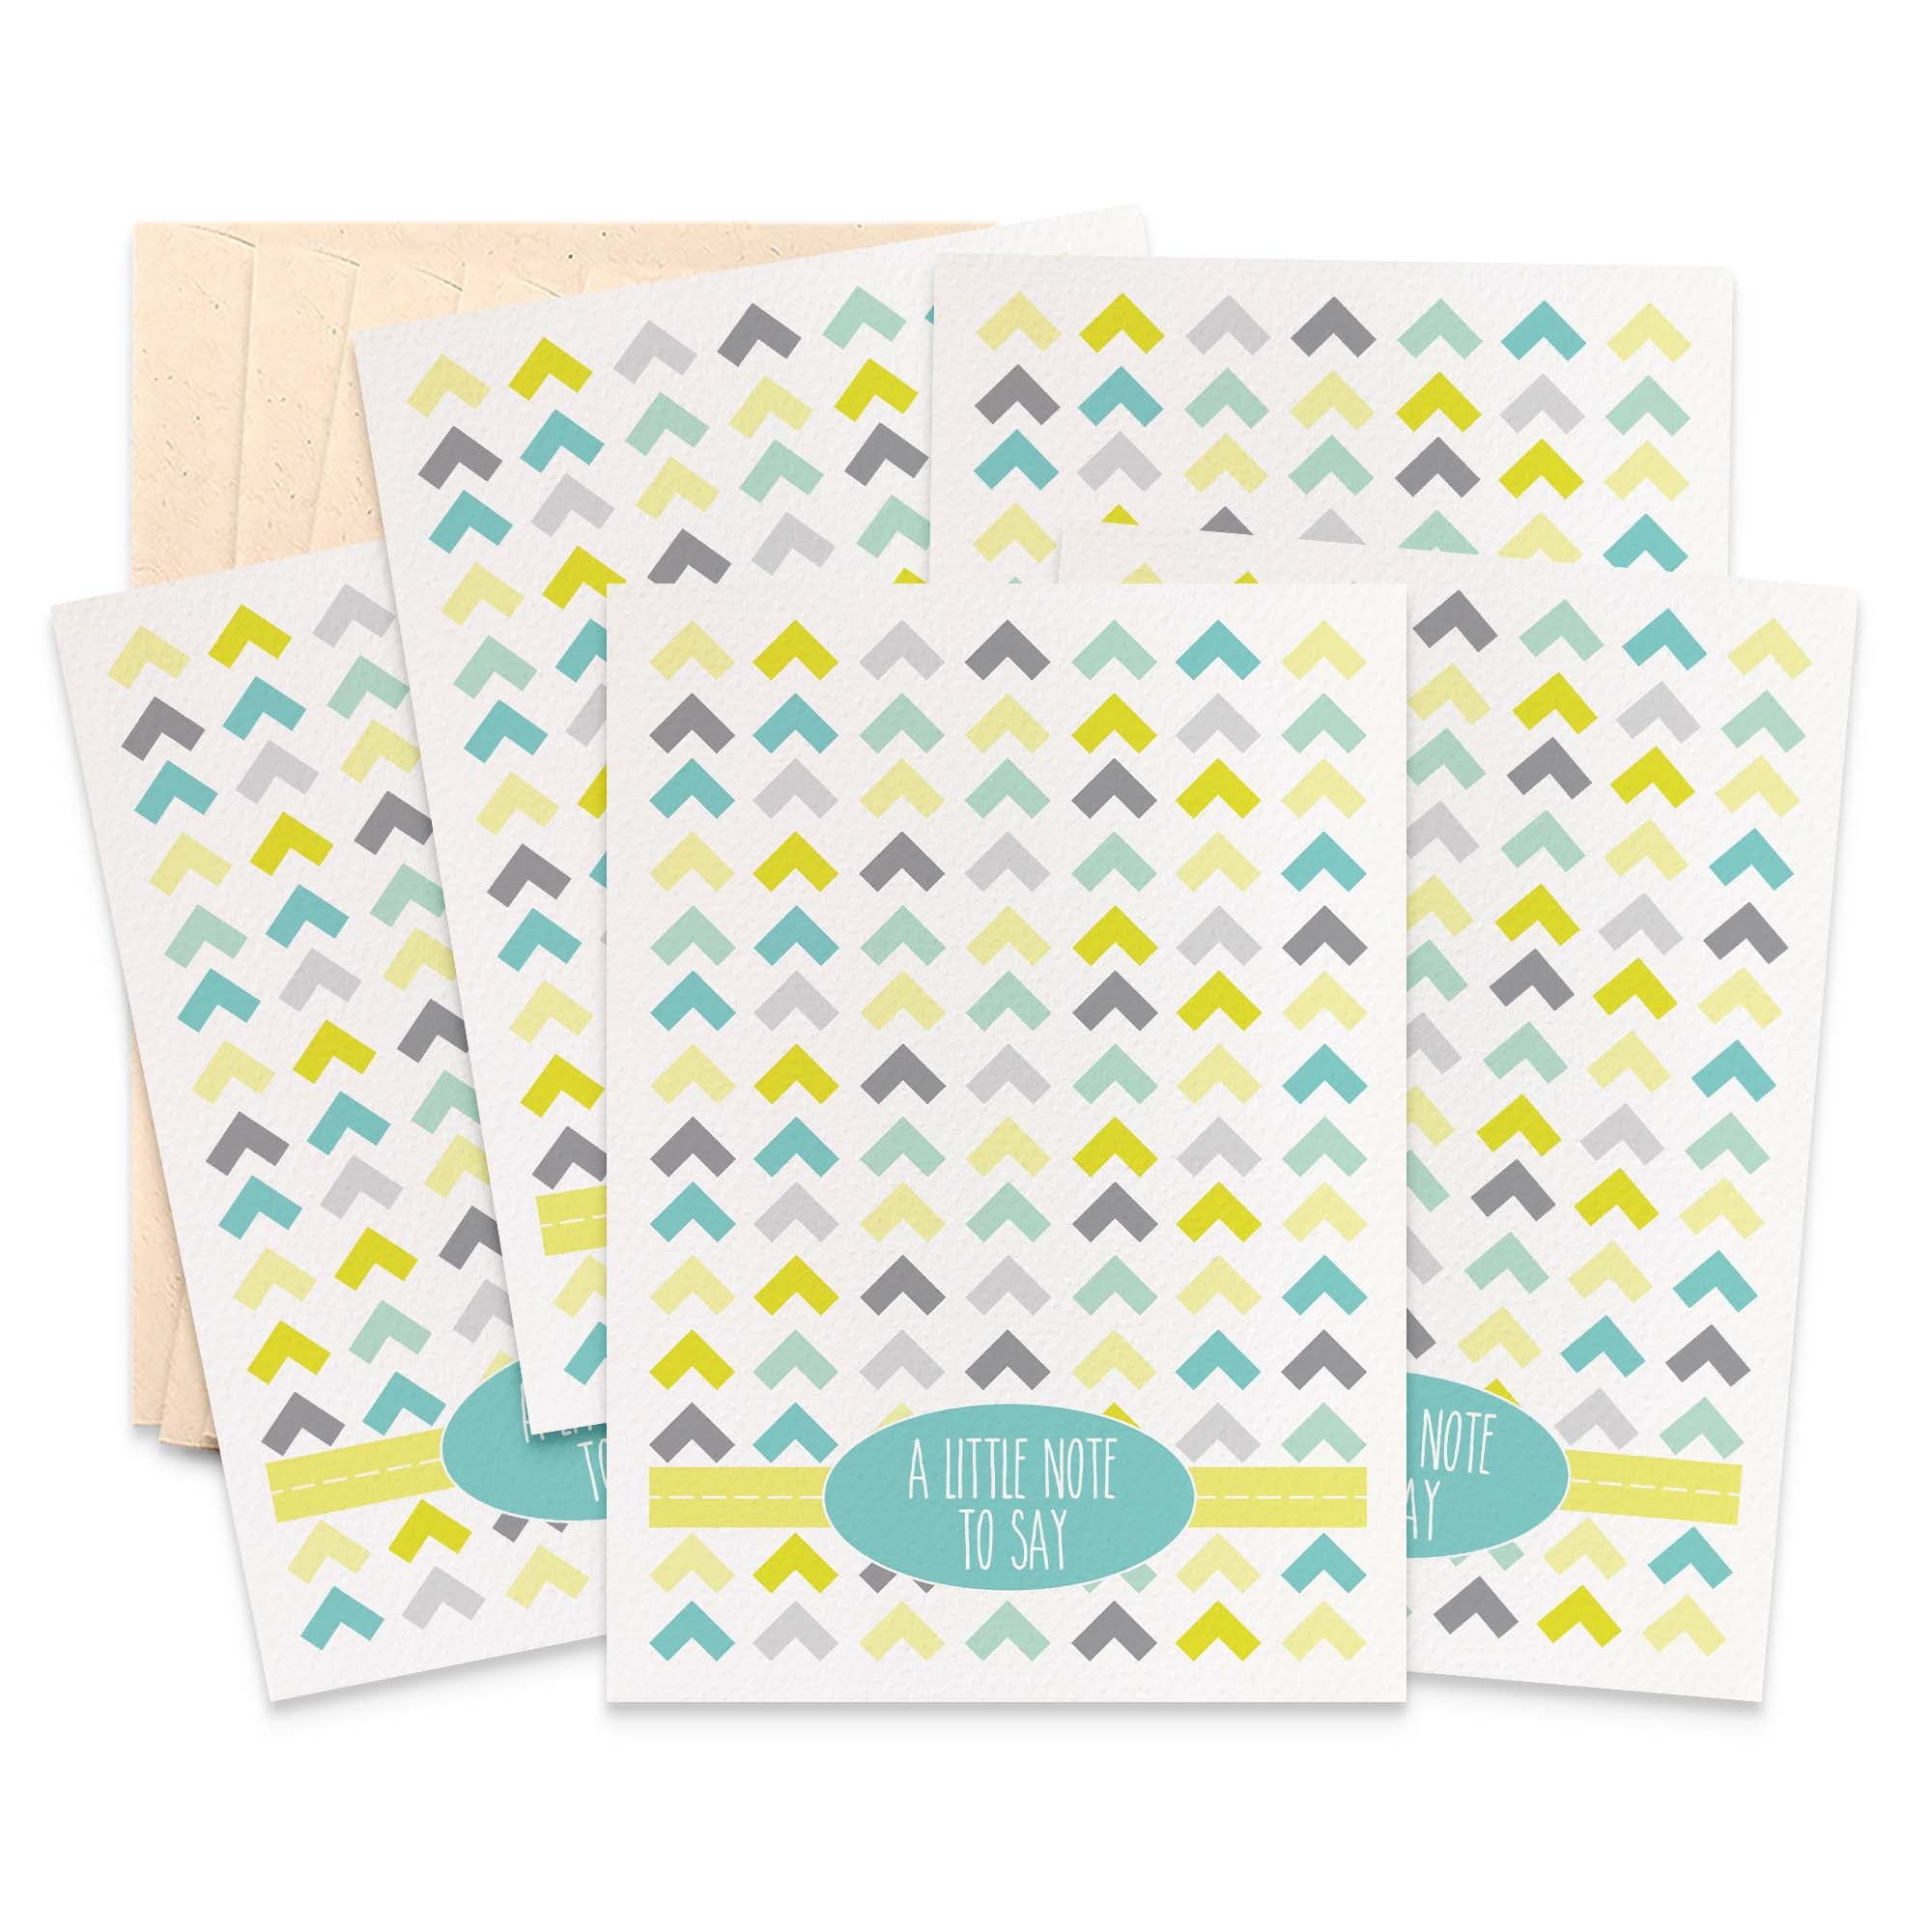 Set of 5 - Mustard Arrows Greeting Cards by mumandmehandmadedesigns- An Australian Online Stationery and Card Shop